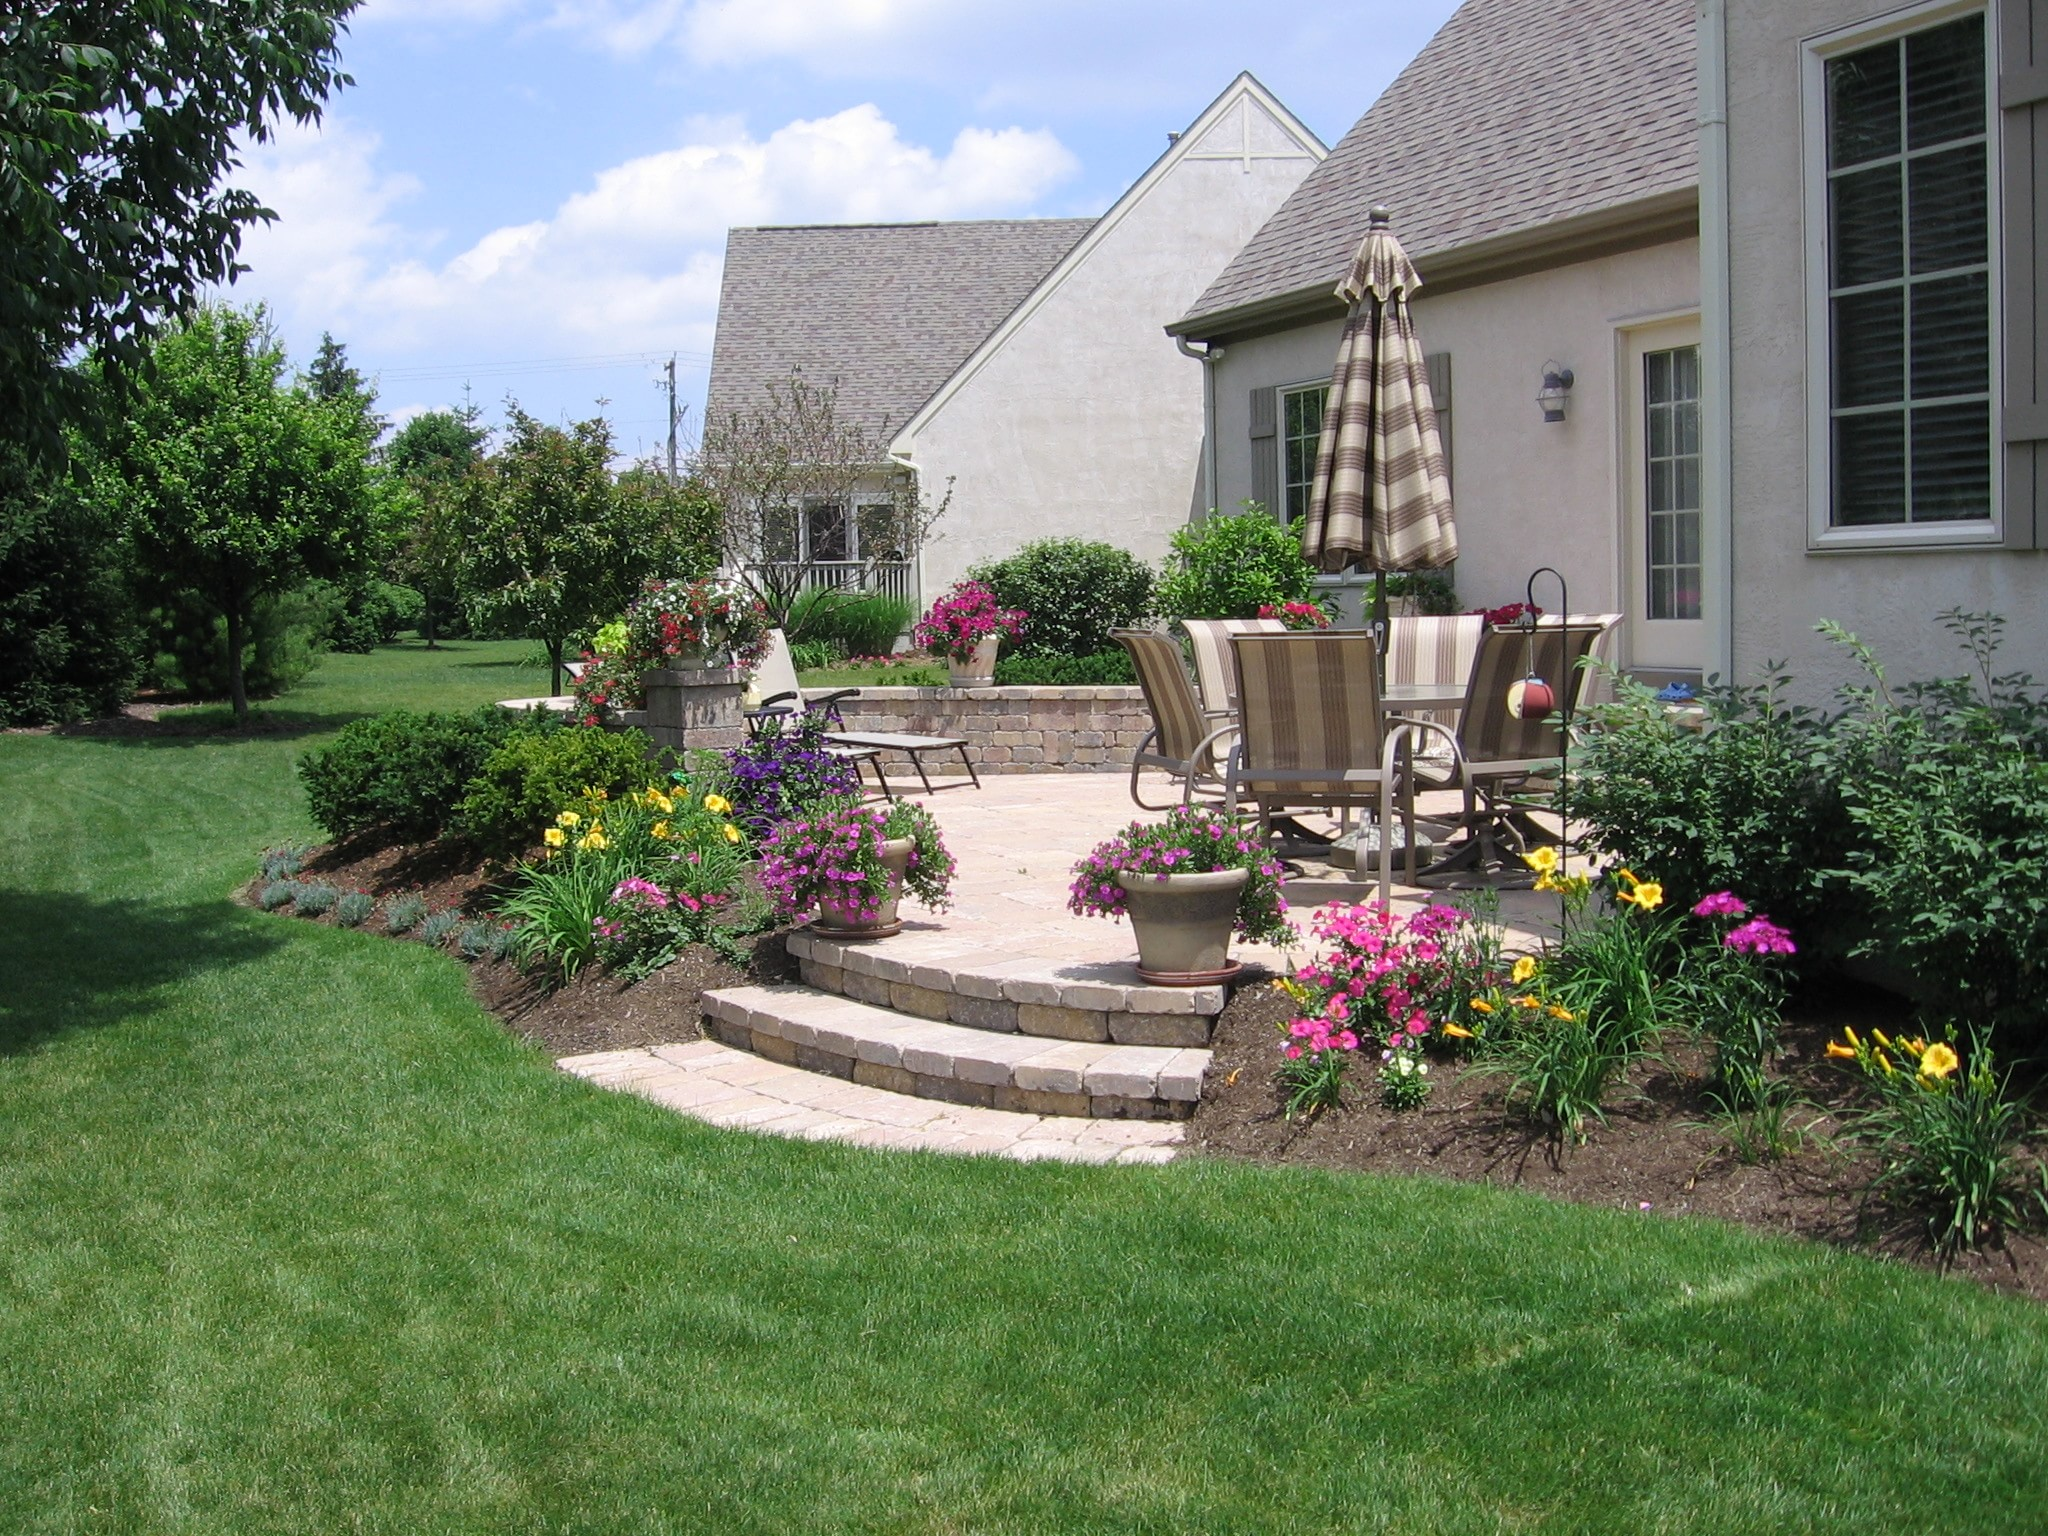 Pave Your Way to Better Living - Buck and Sons Landscape ... on Concrete Slab Backyard Ideas id=54375